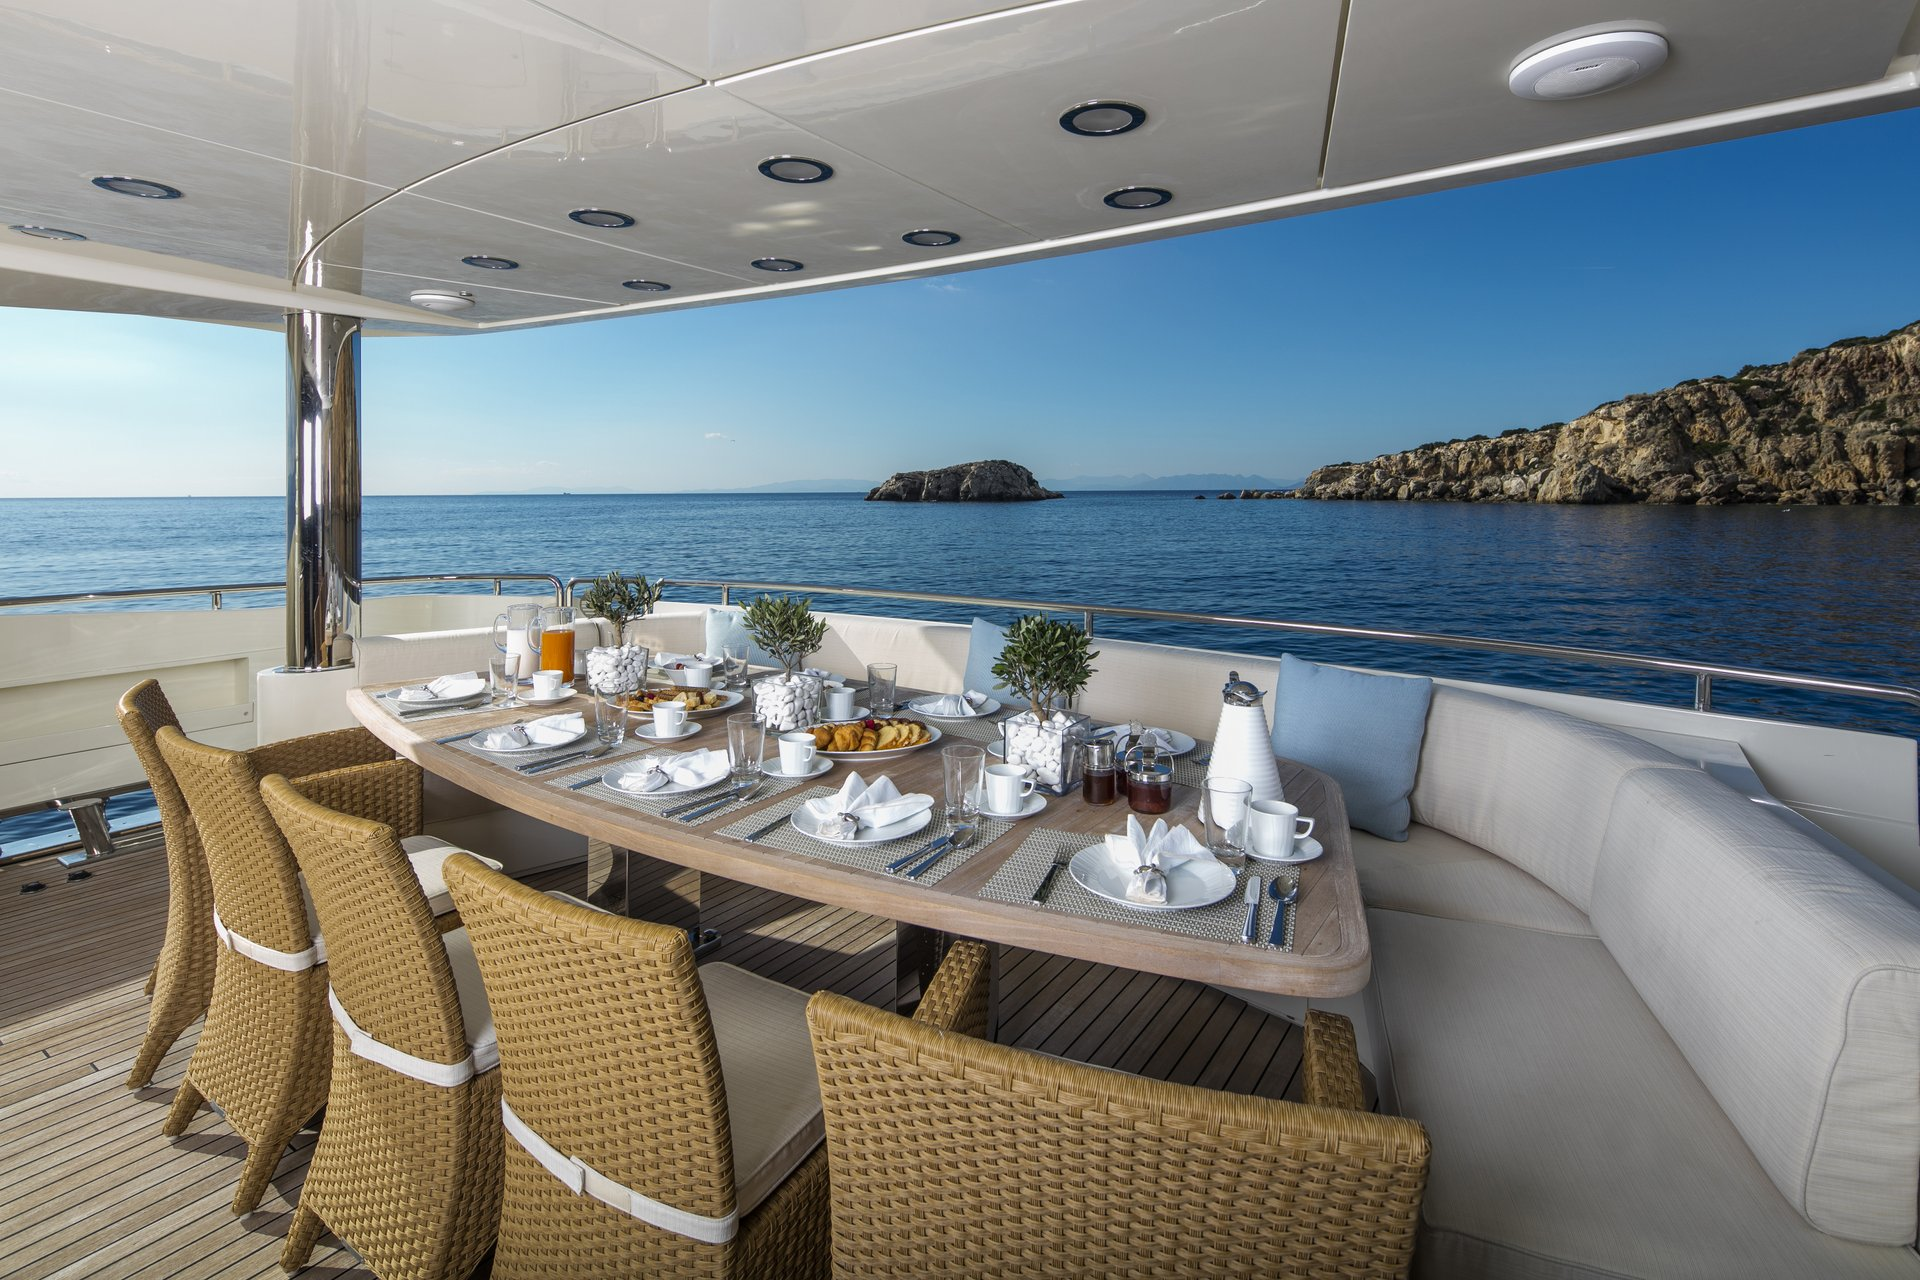 M/Y RINI yacht for charter deck dining